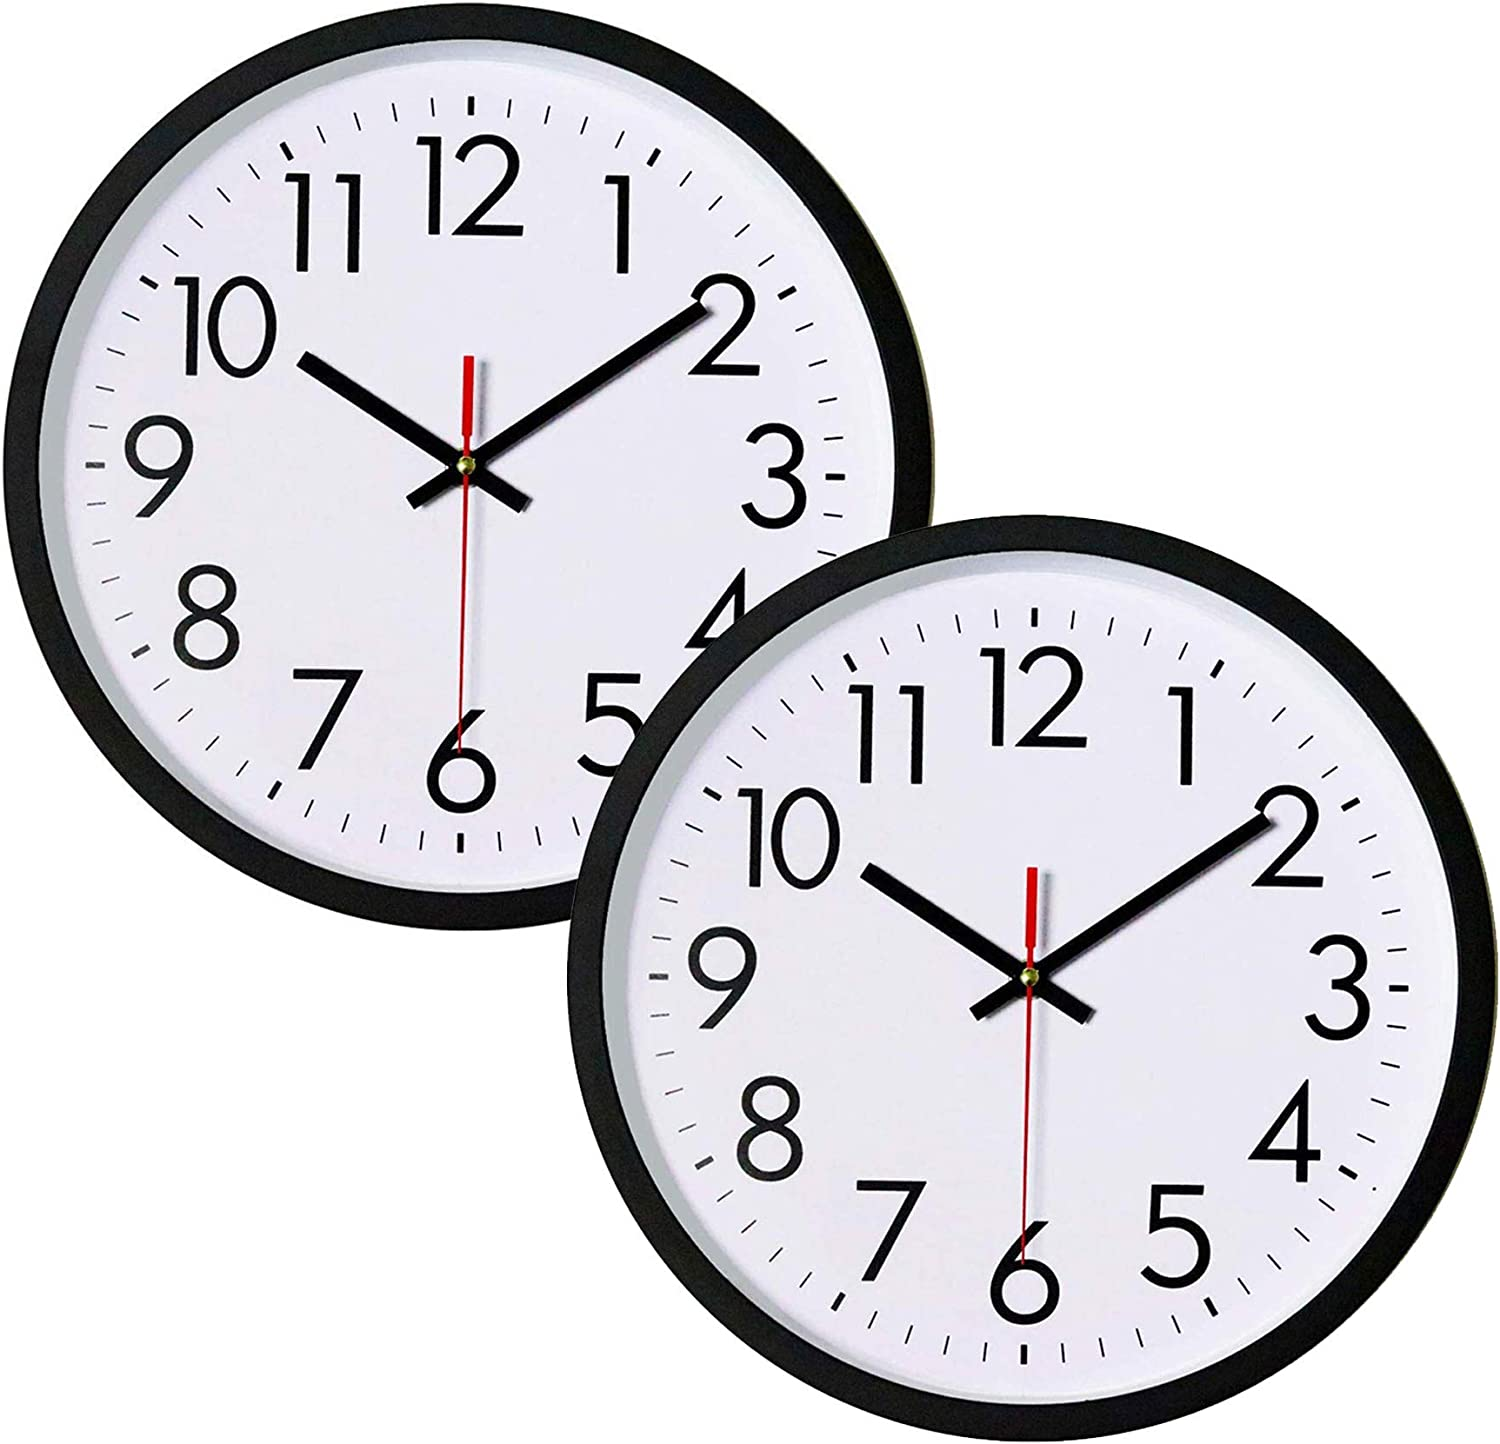 Lumuasky 12 Inch Black Wall Clock, Silent Non-Ticking Quality Quartz Battery Operated Round Easy to Read Decorative for Home Office School (2 Pack)